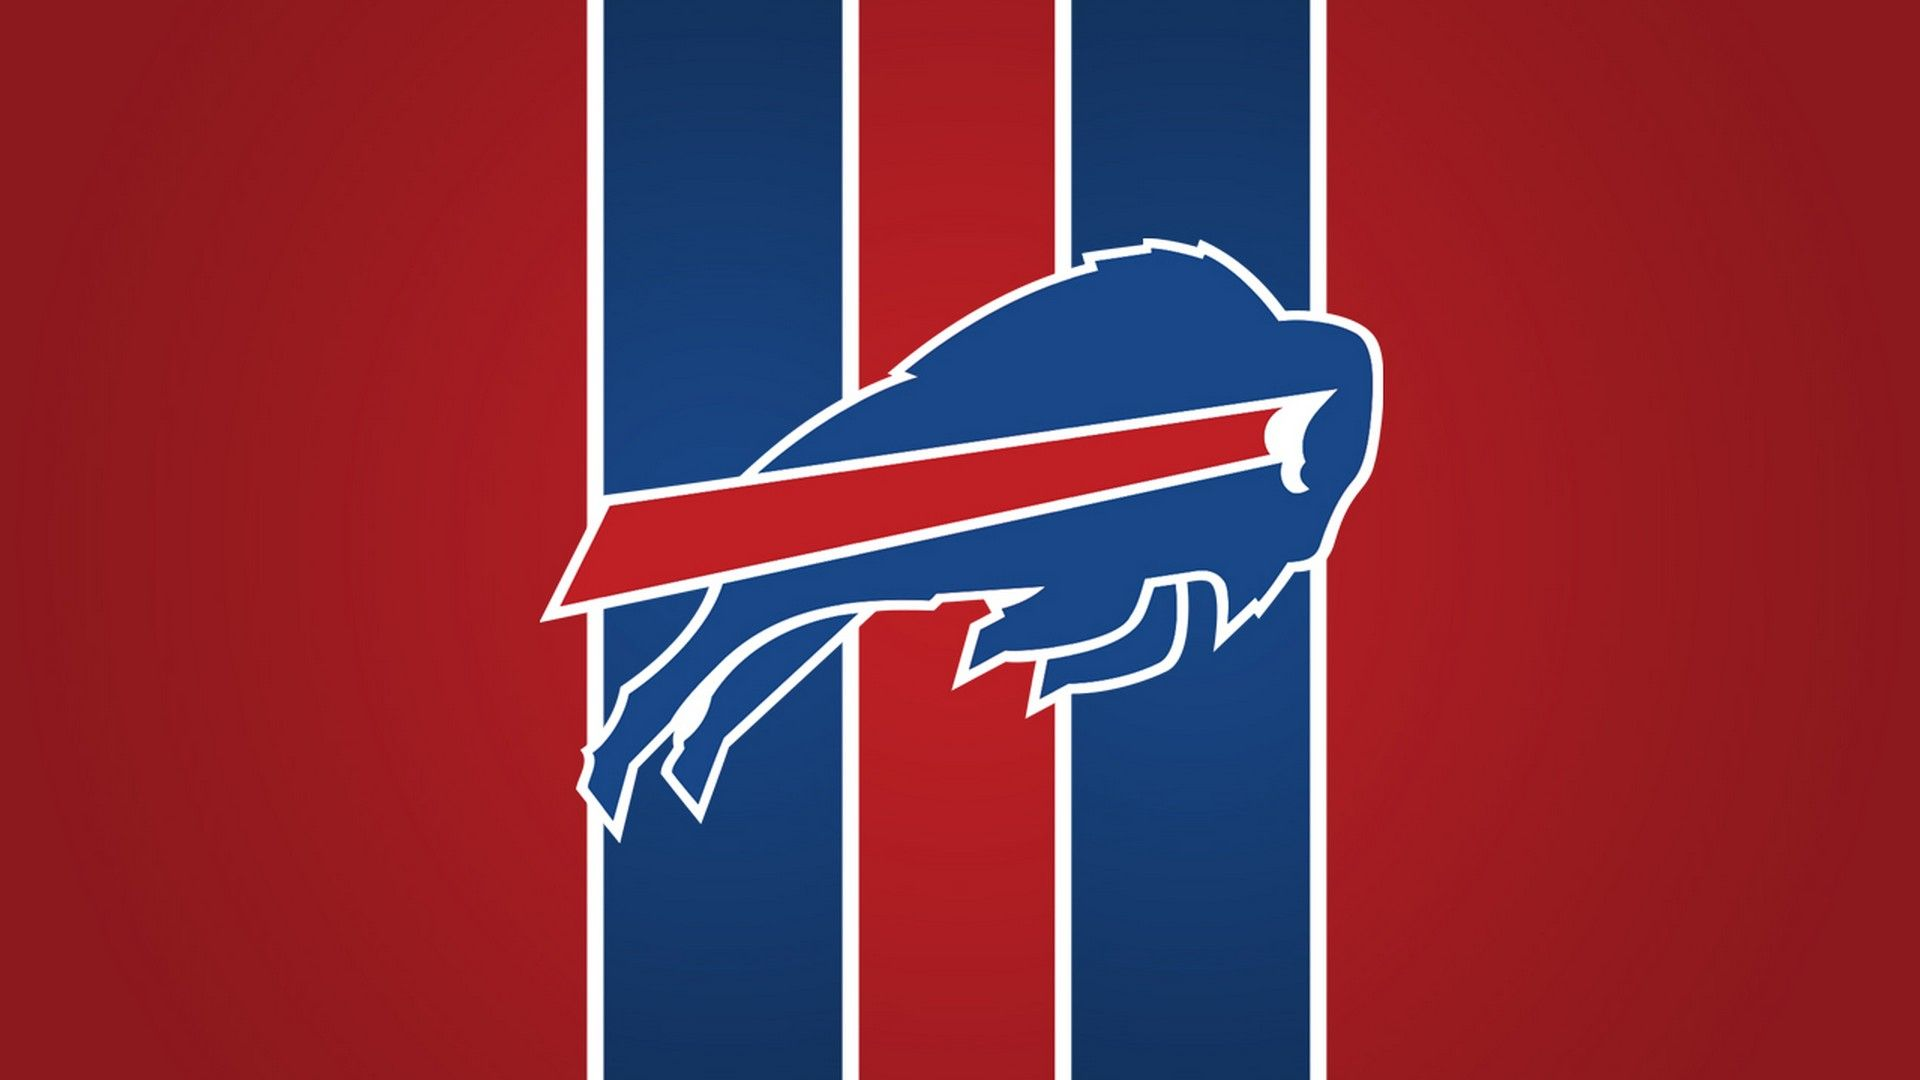 Buffalo Bills For Desktop Wallpaper 2020 Nfl Football Wallpapers Buffalo Bills Logo Buffalo Bills Buffalo Bills Stuff